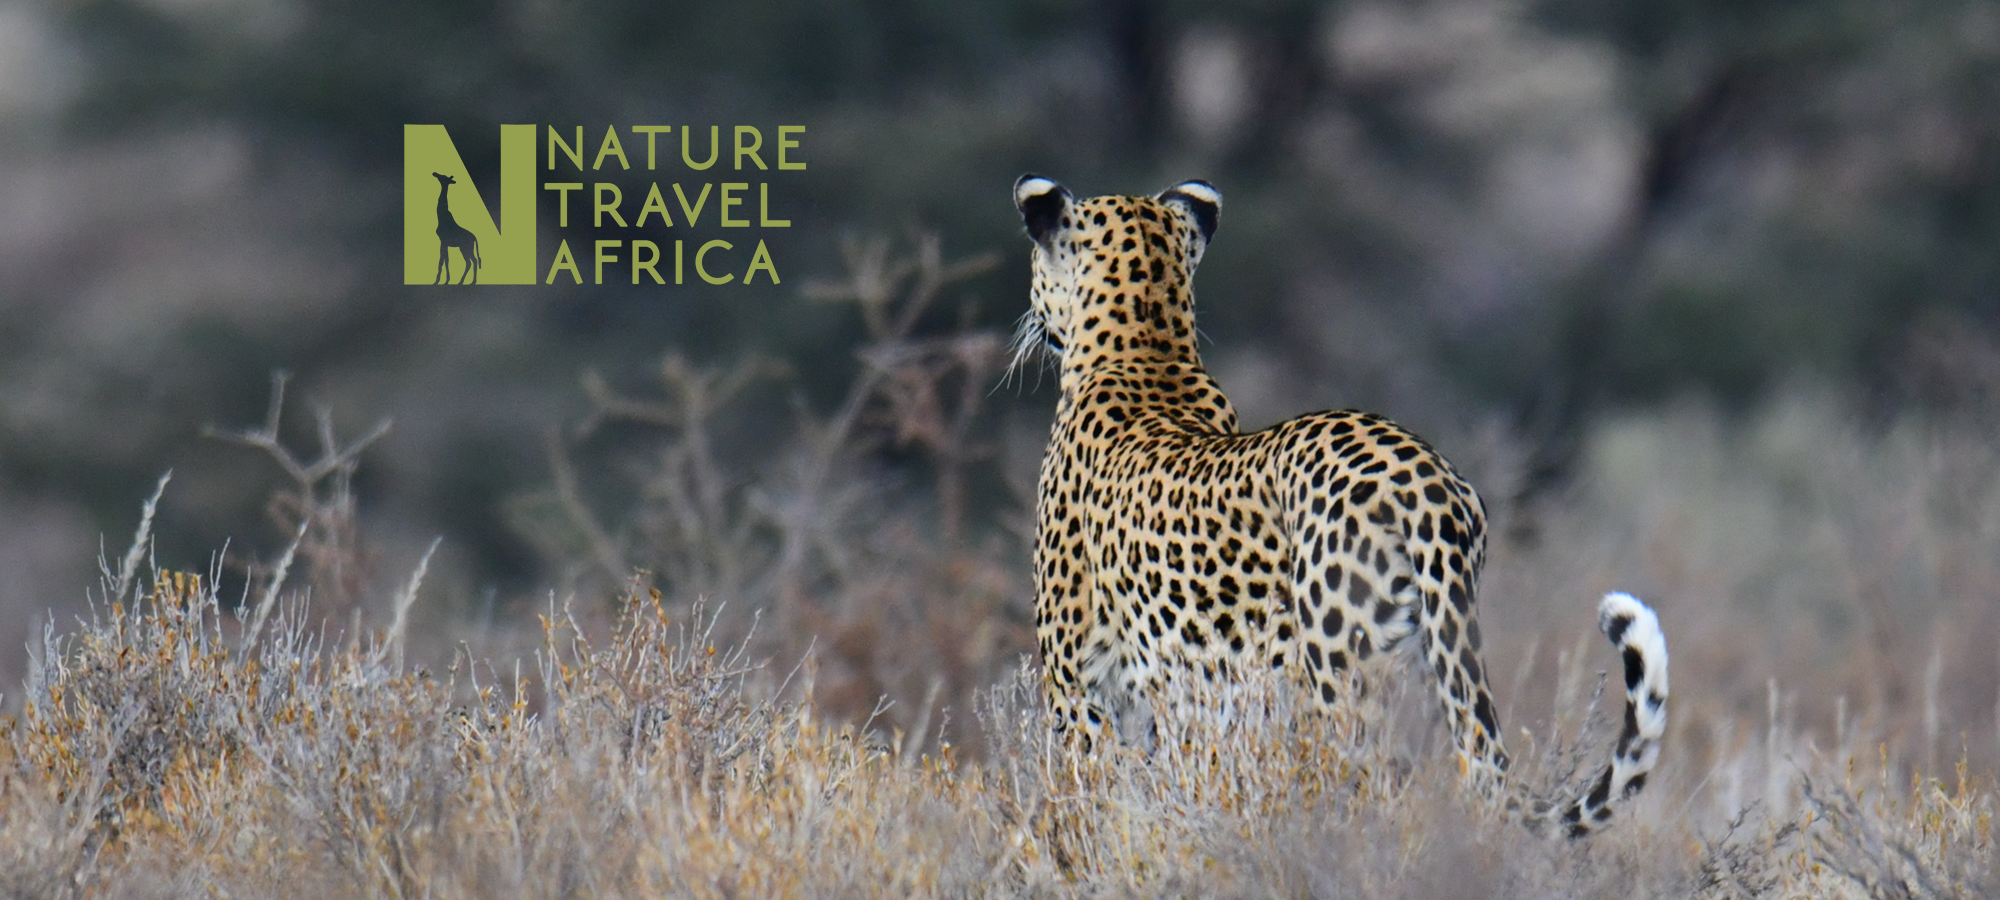 Nature Travel Africa